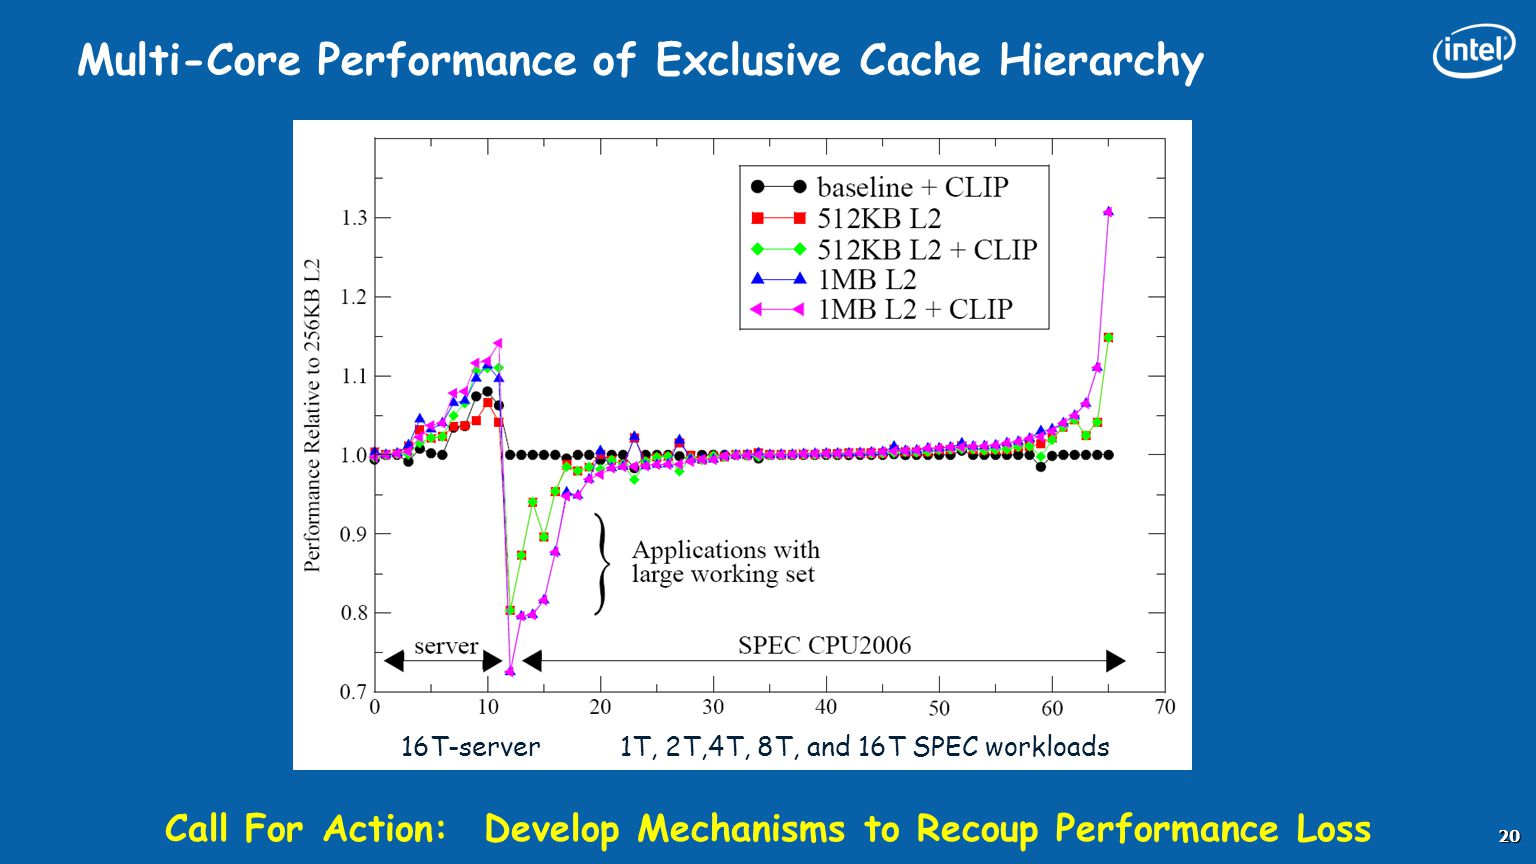 Multi-Core Performance of Exclusive Cache Hierarchy